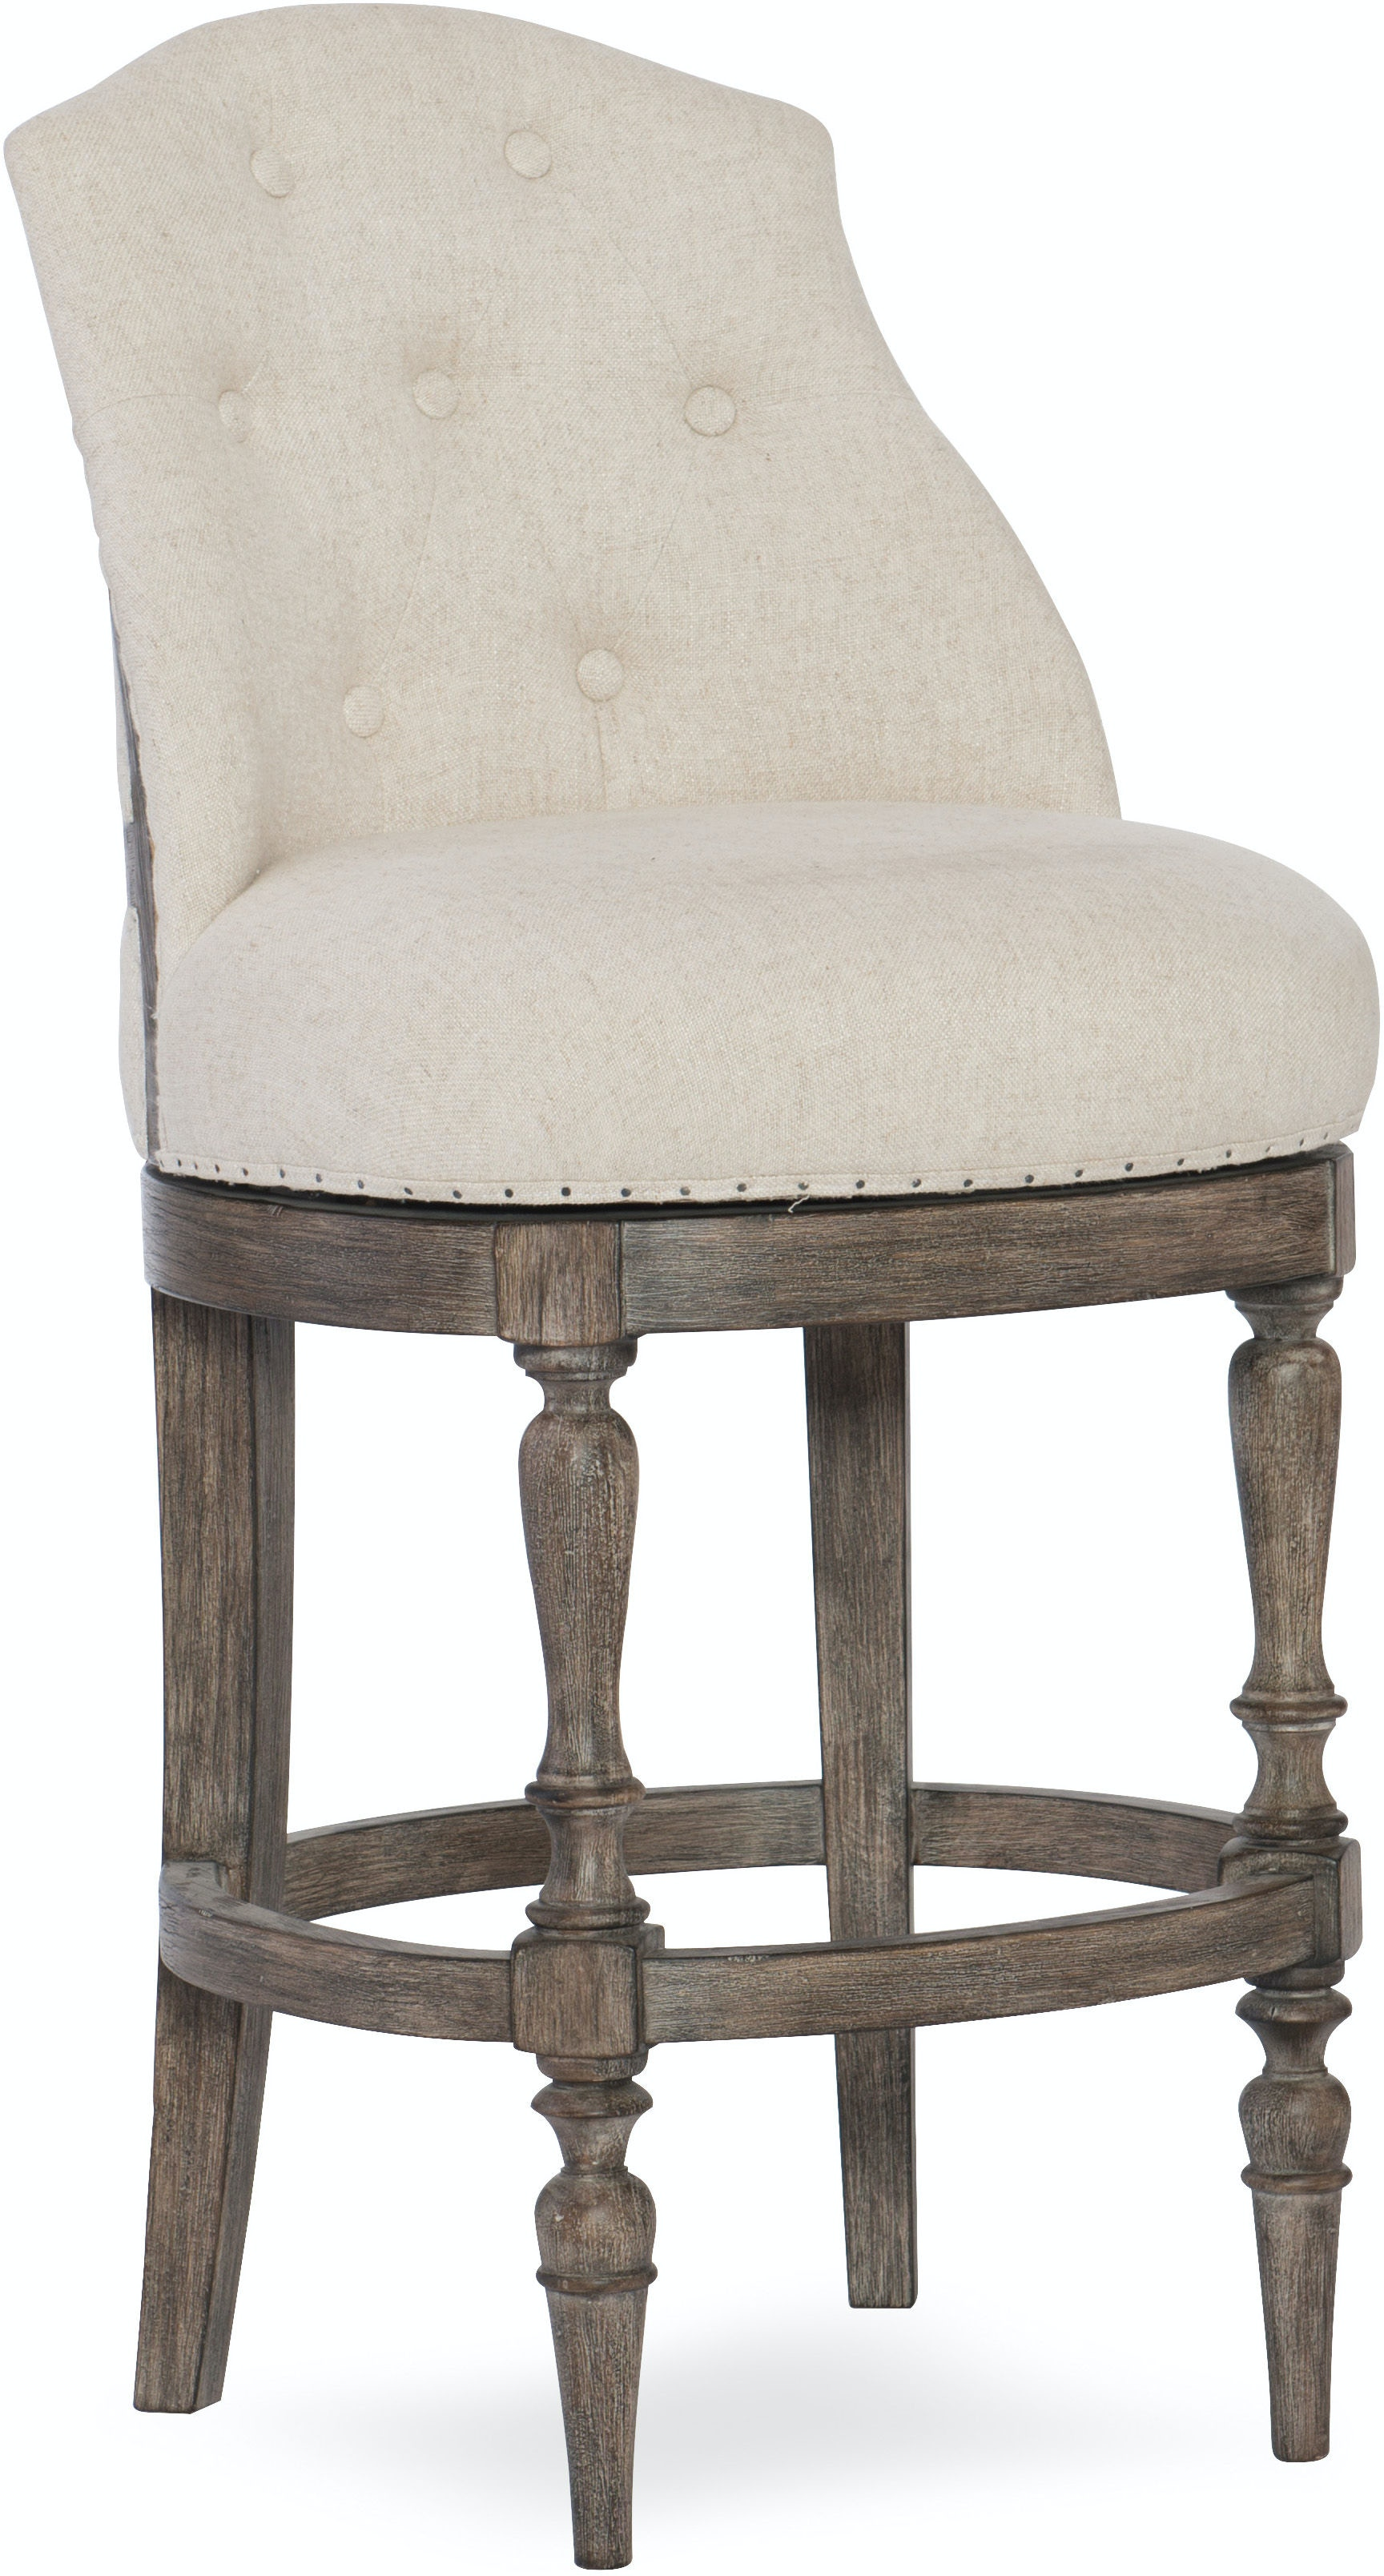 Hooker Furniture Dining Room Kacey Deconstructed Counter Stool 300